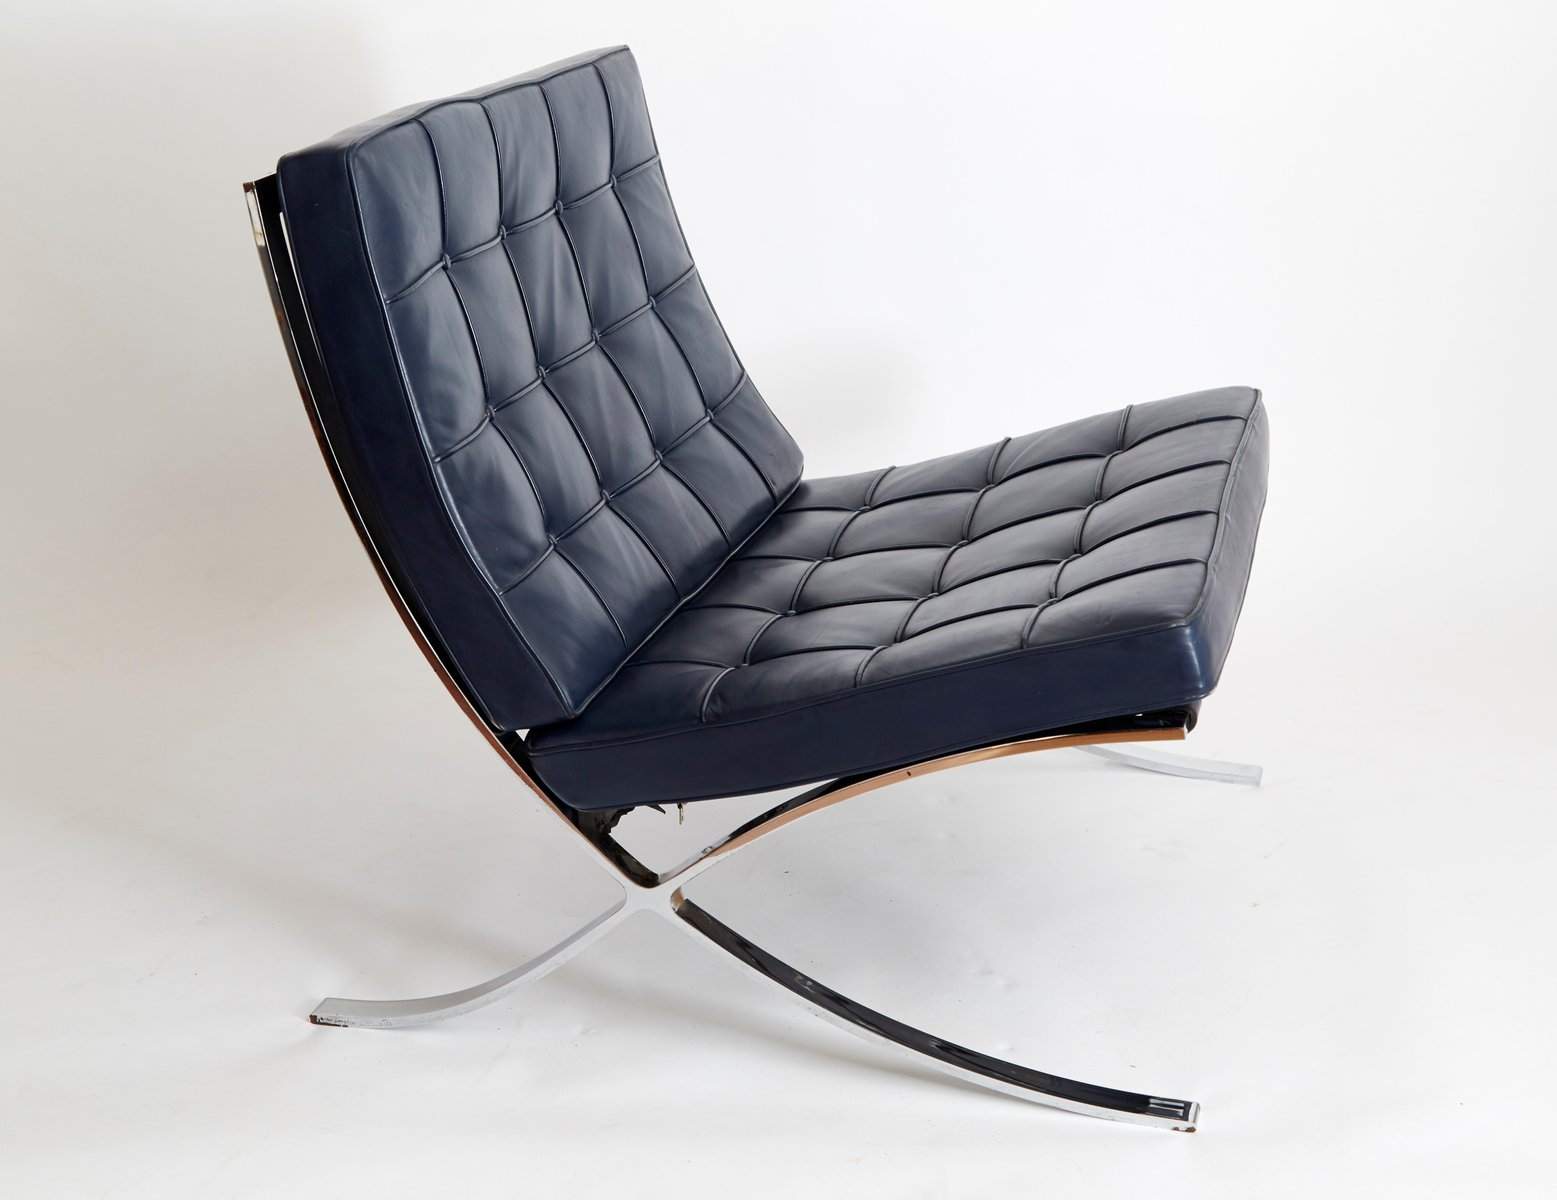 barcelona chairs for sale lounge walmart vintage mr90 chair by ludwig mies van der rohe